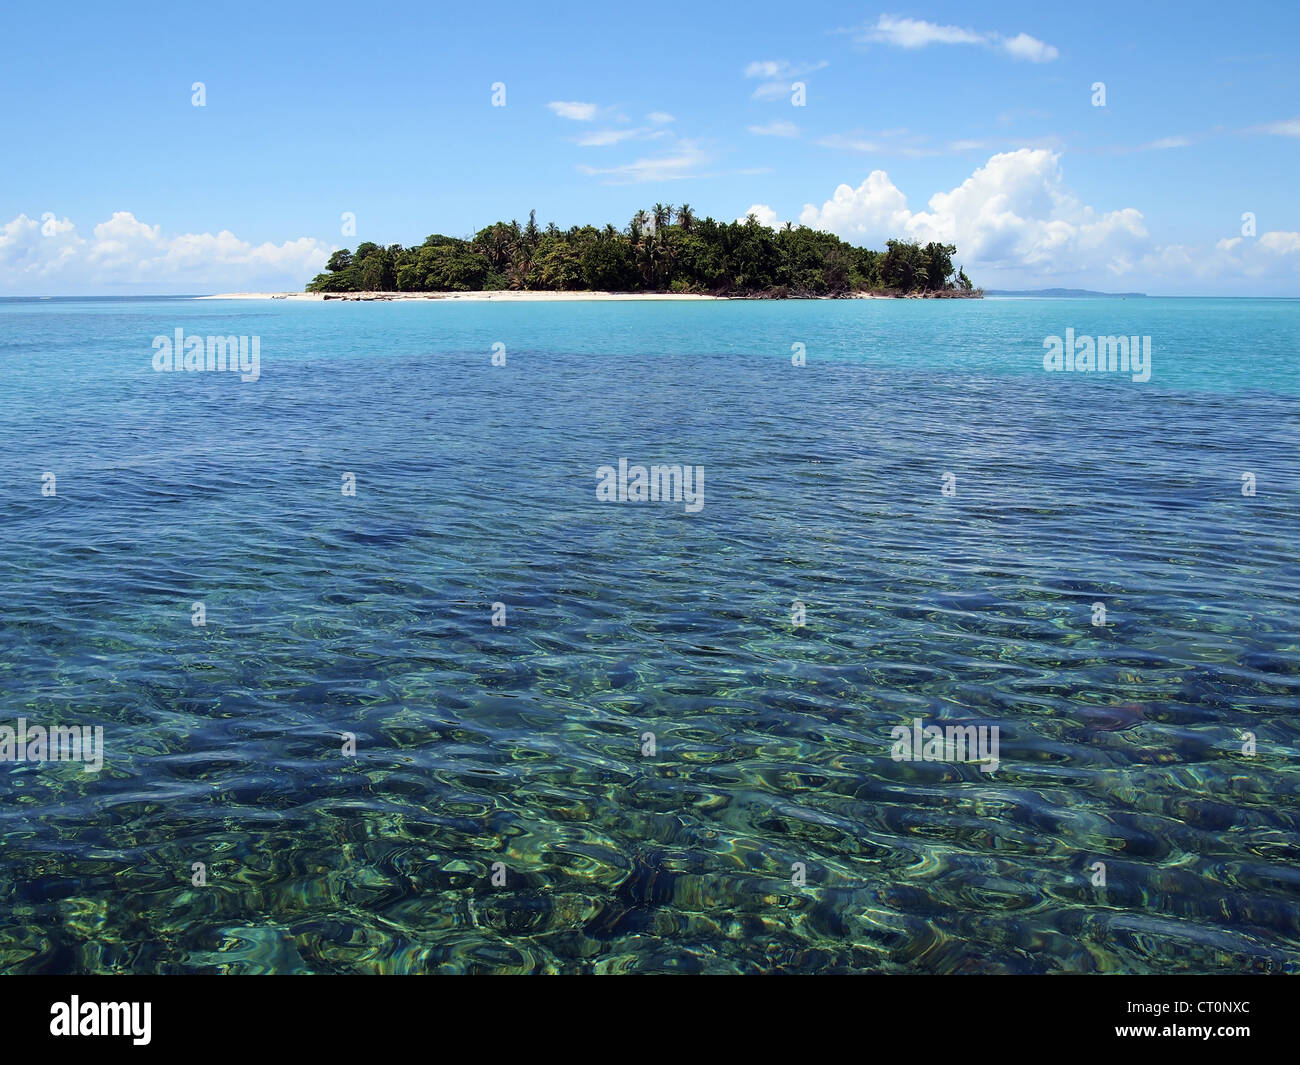 Pristine island with white sandy beach in the Caribbean sea - Stock Image